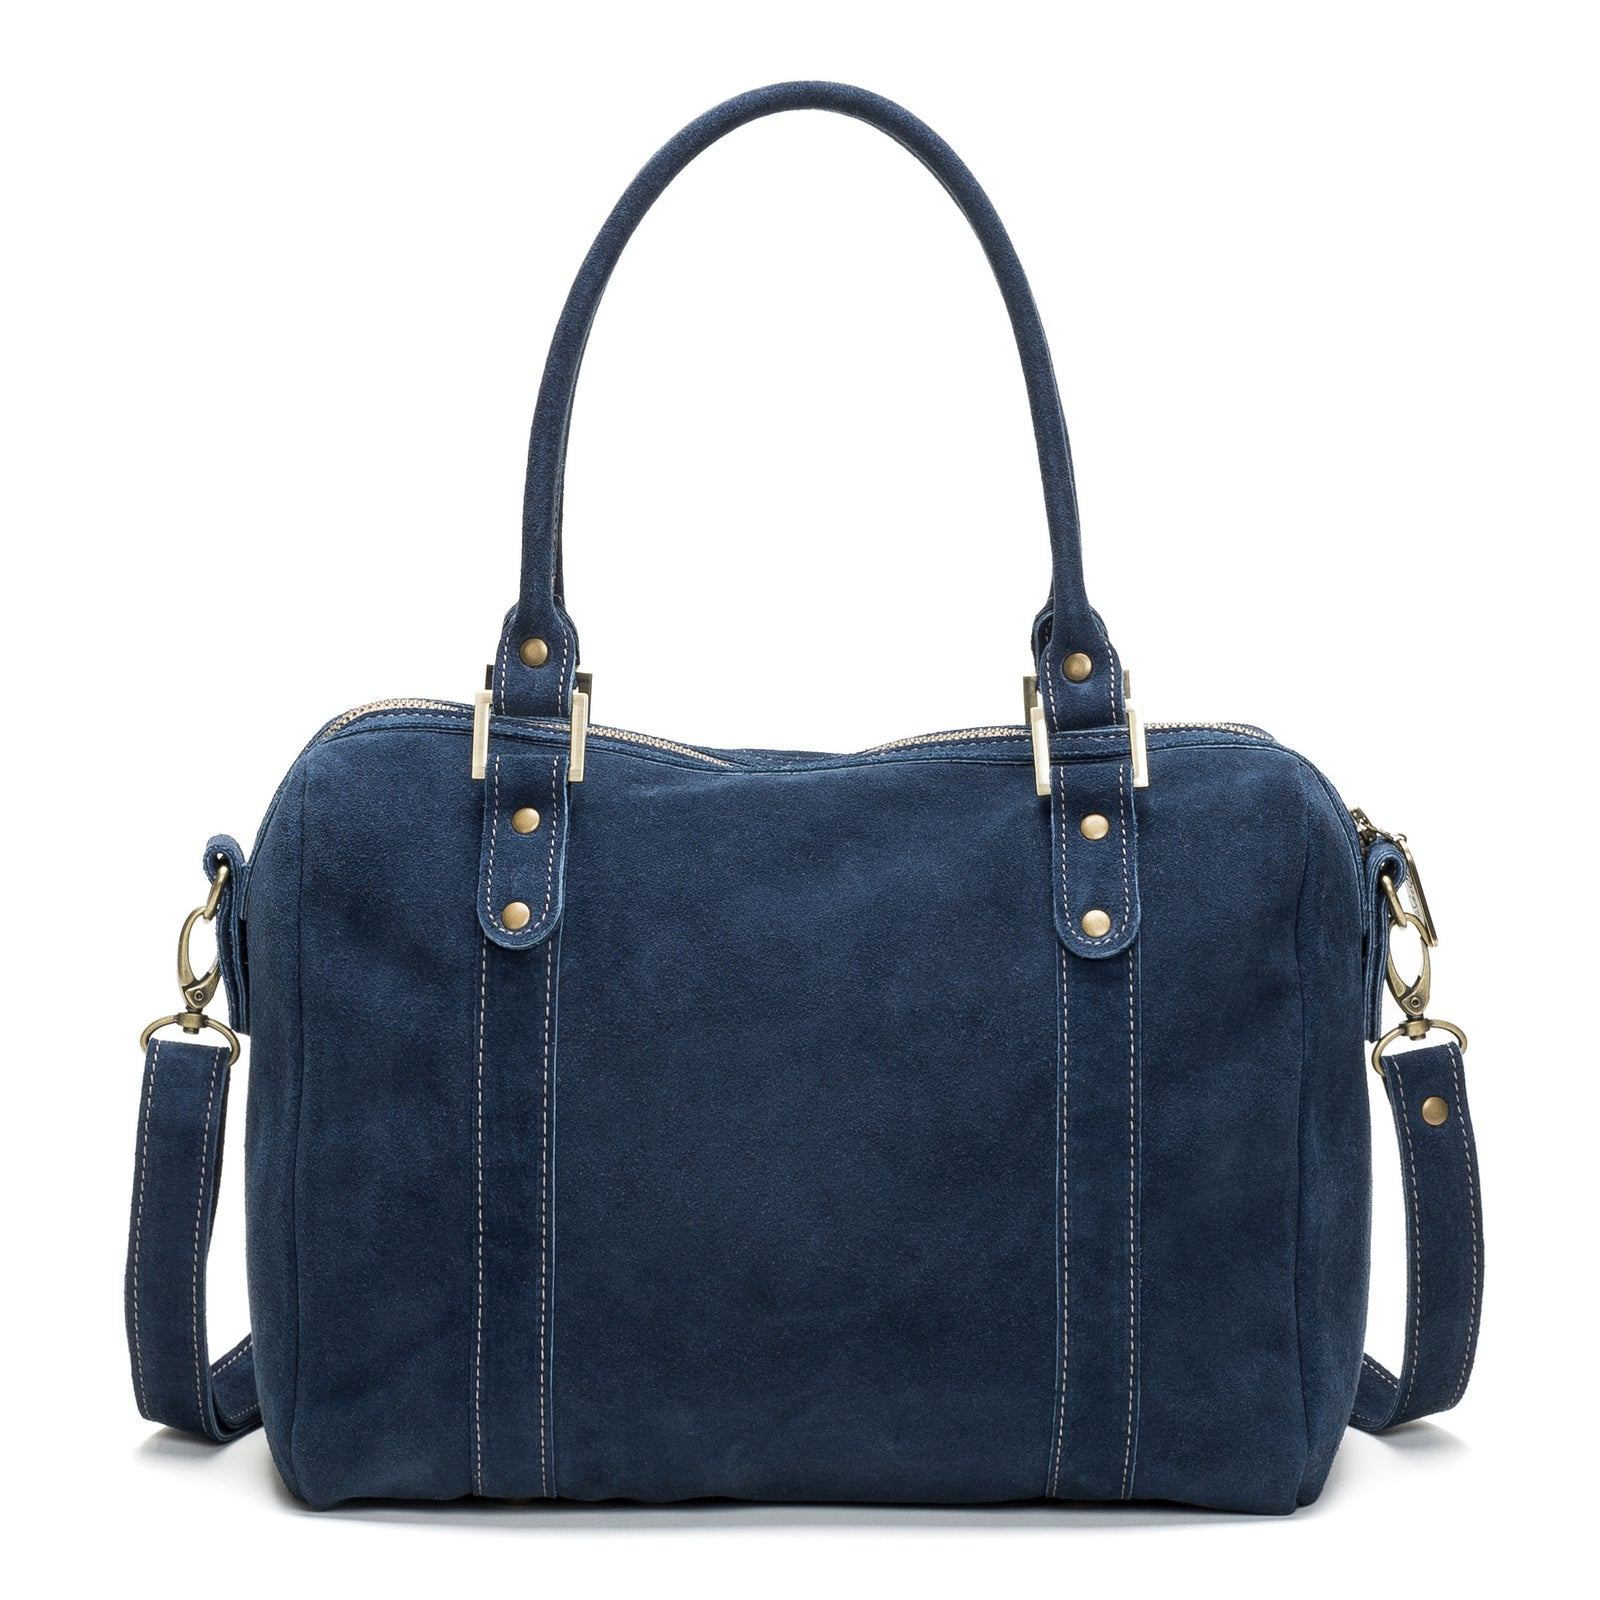 Angi Satchel - Pacific - Brynn Capella, Satchel